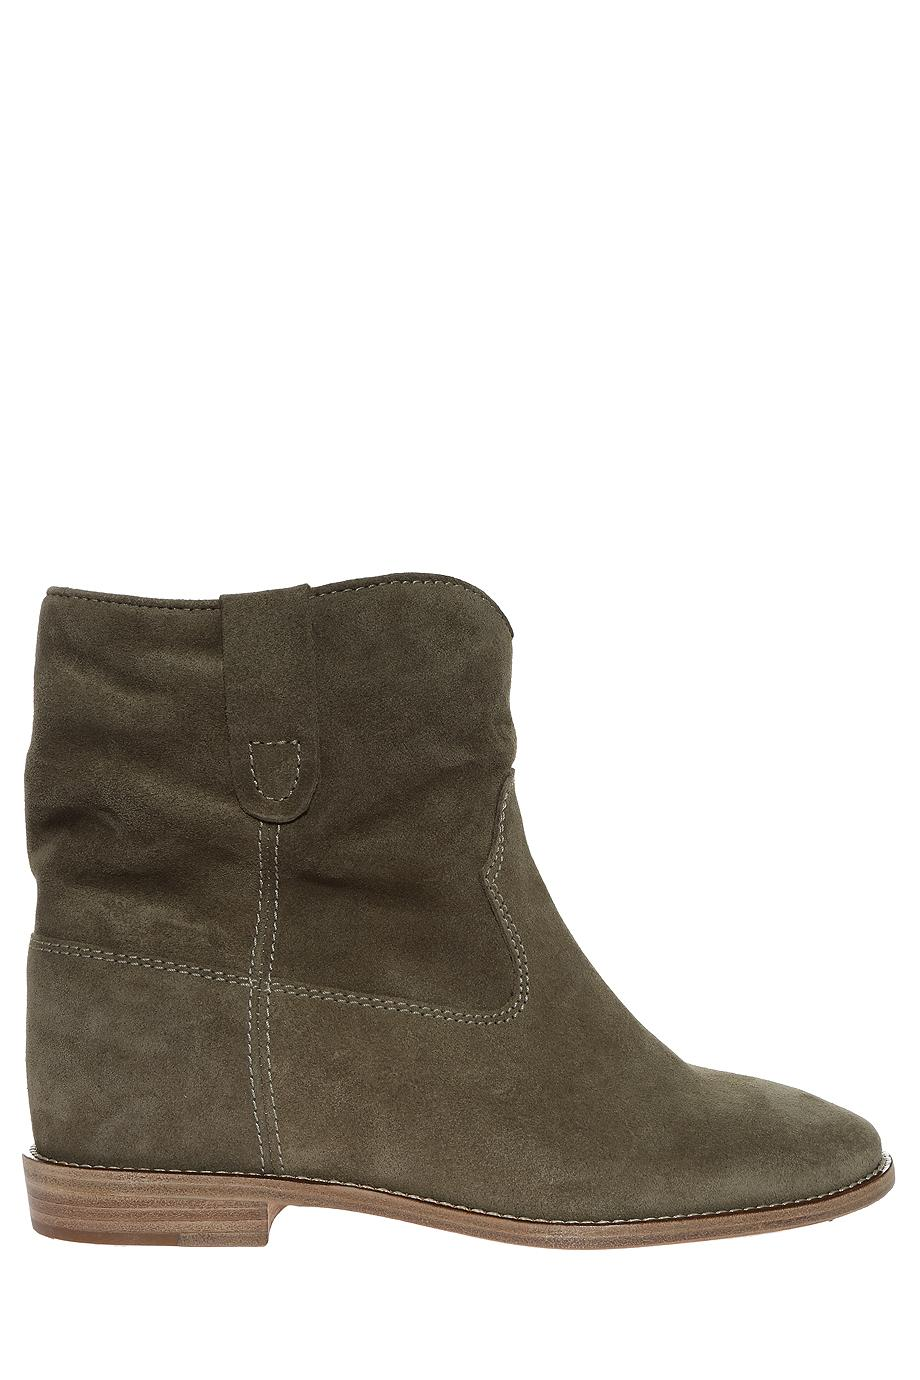 201 toile marant crisi suede ankle boots in multicolor